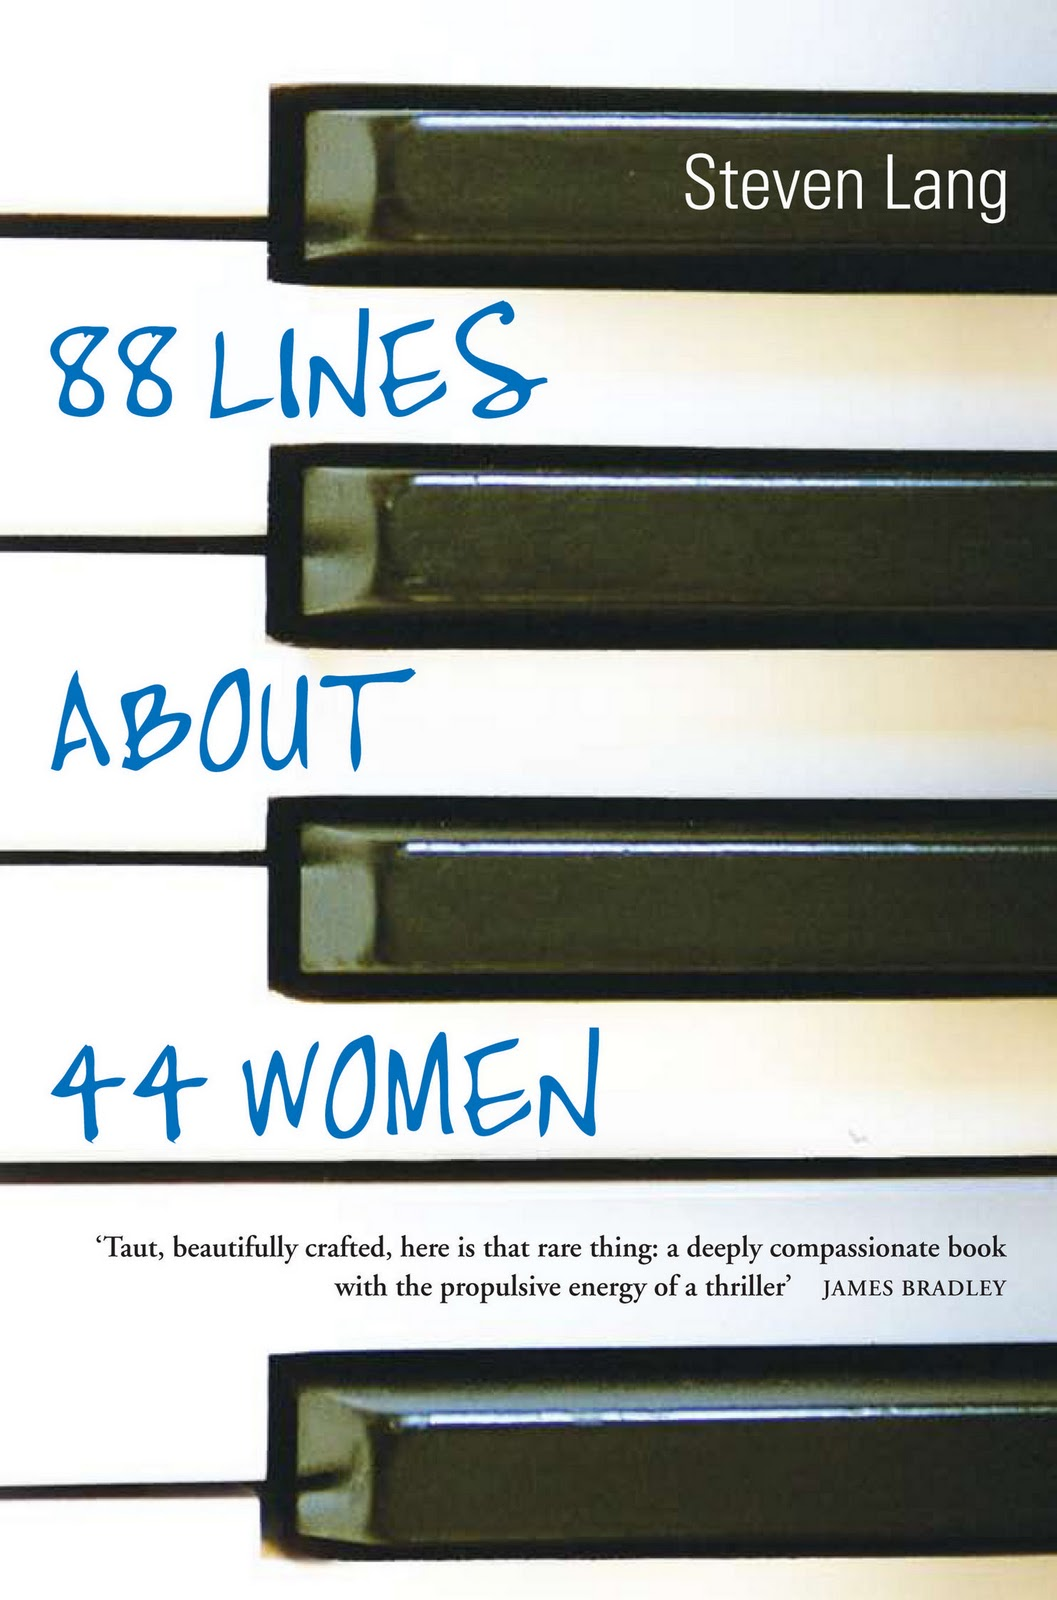 88 Lines About 44 Women by Steven Lang Review Extract; For me there was no